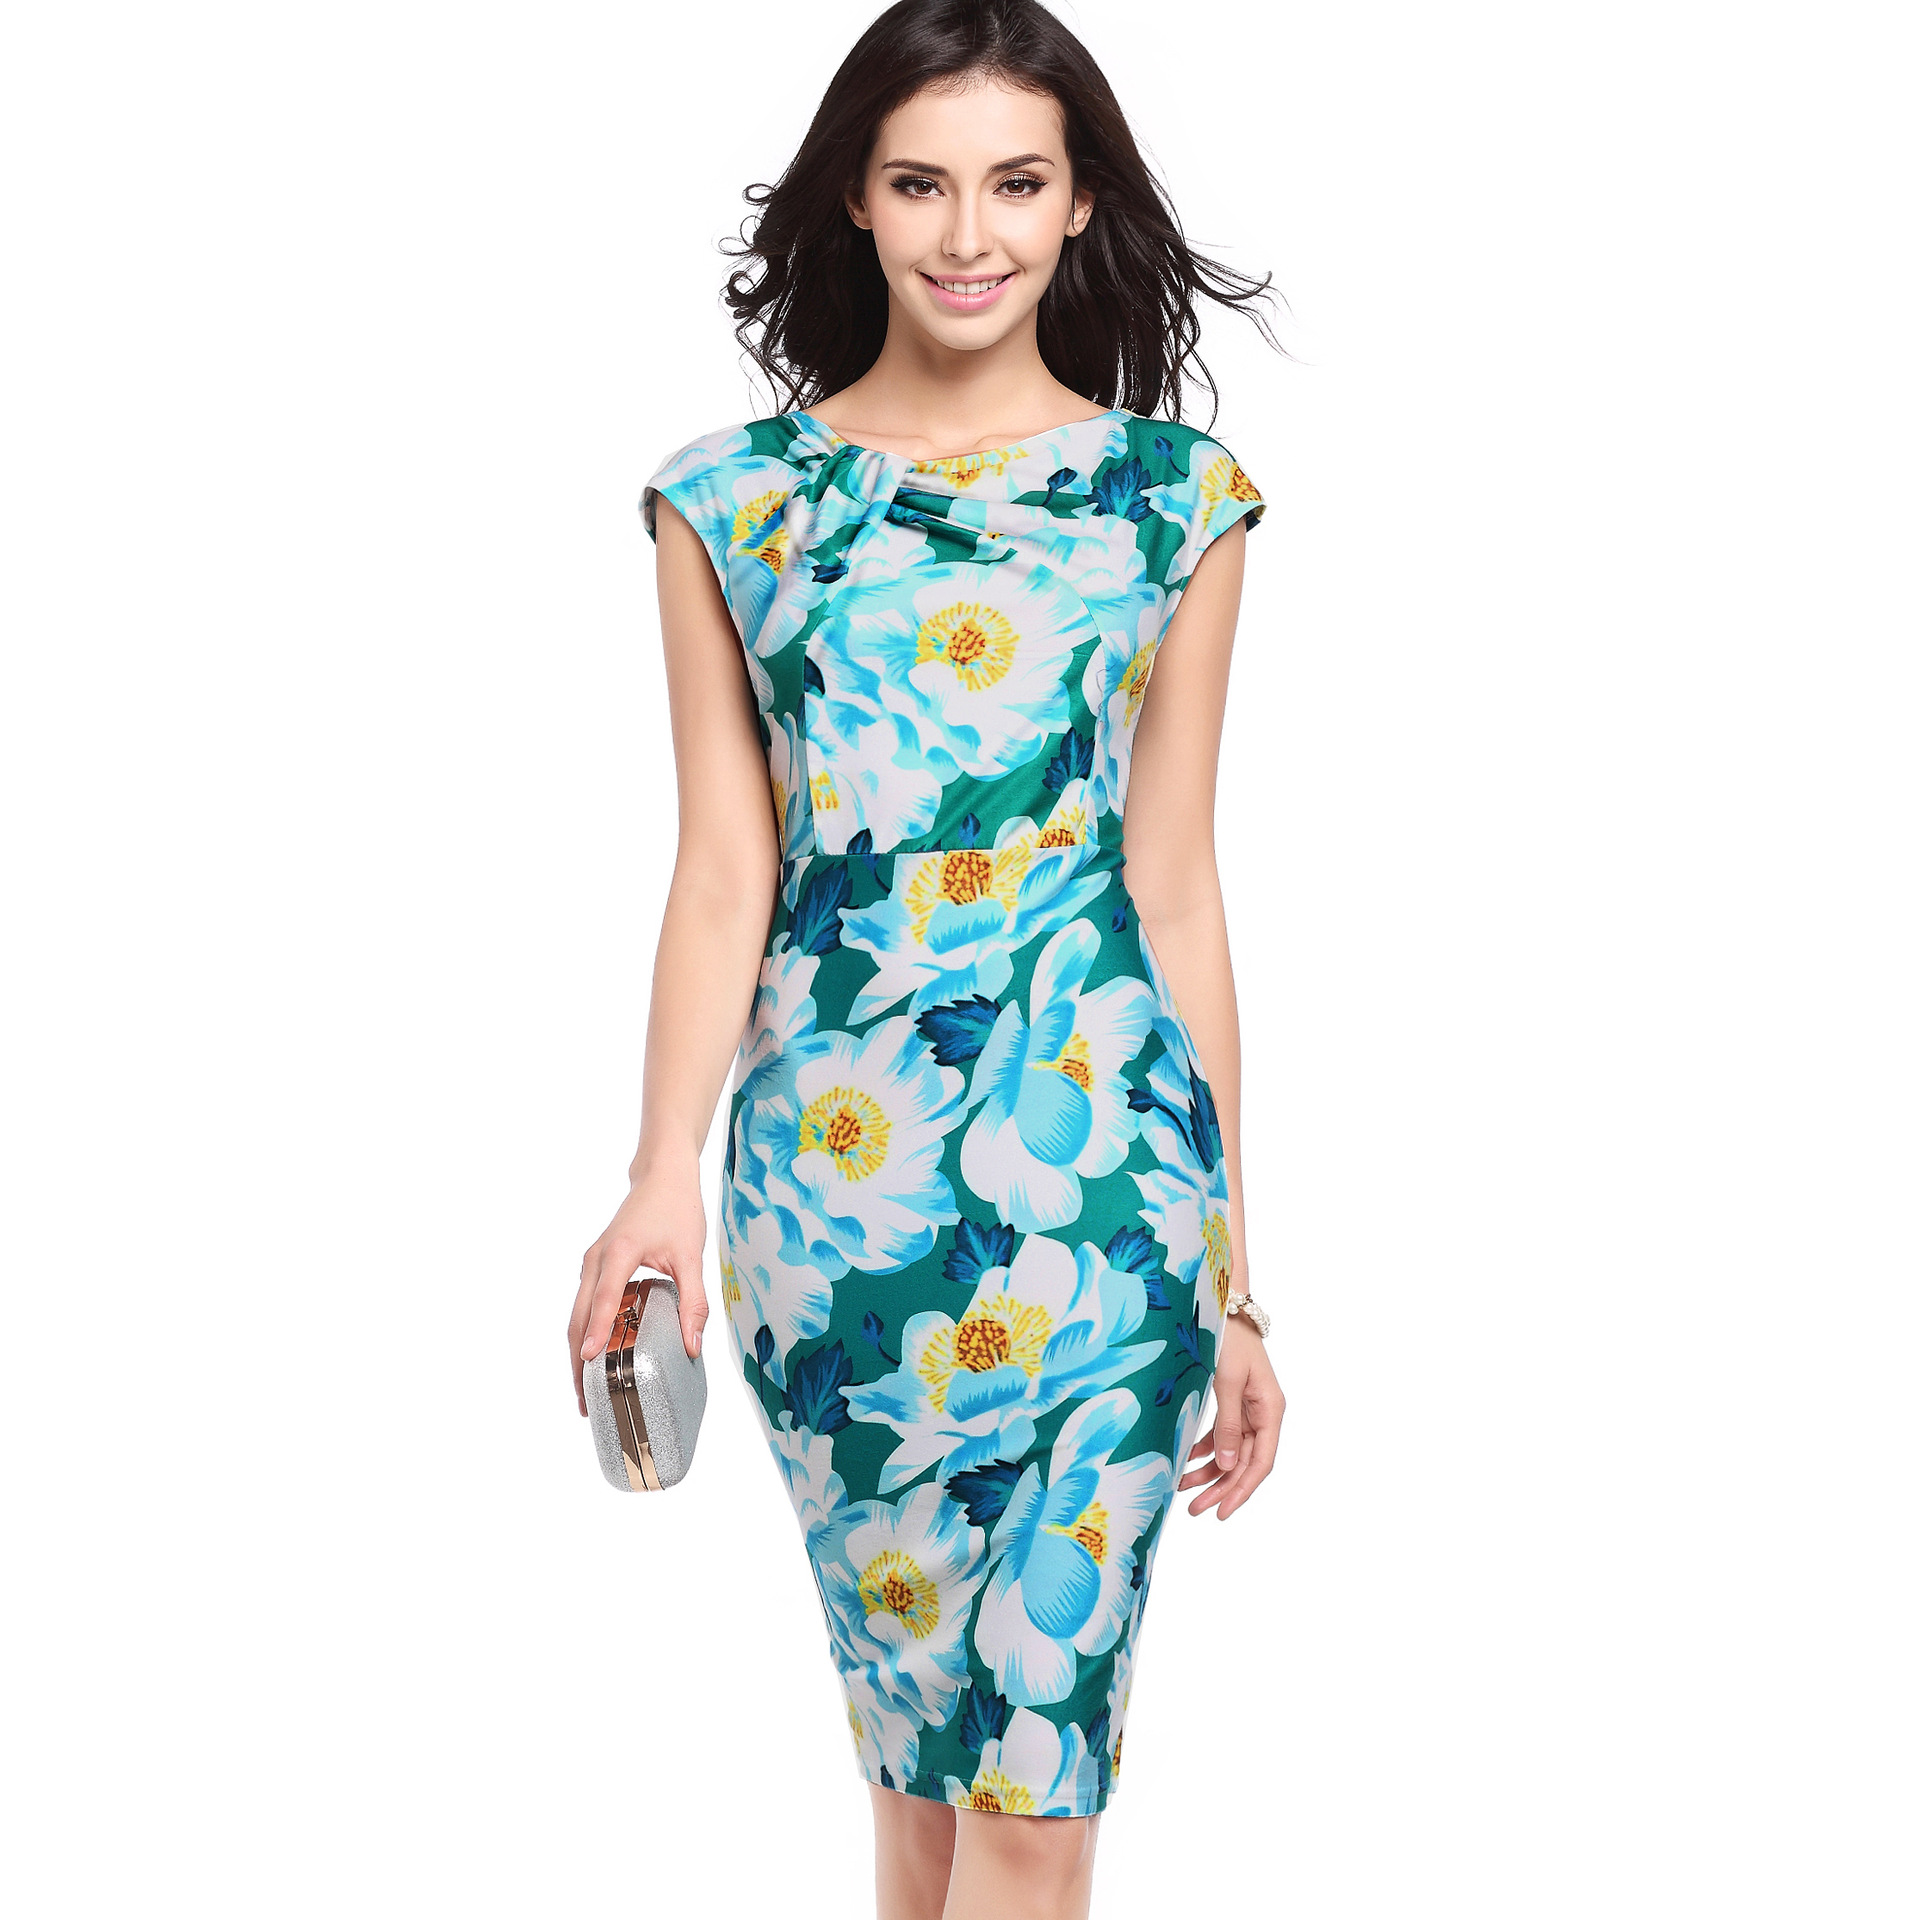 Fashion Bodycon Print Dress Elegant Women Summer Evening Party ...